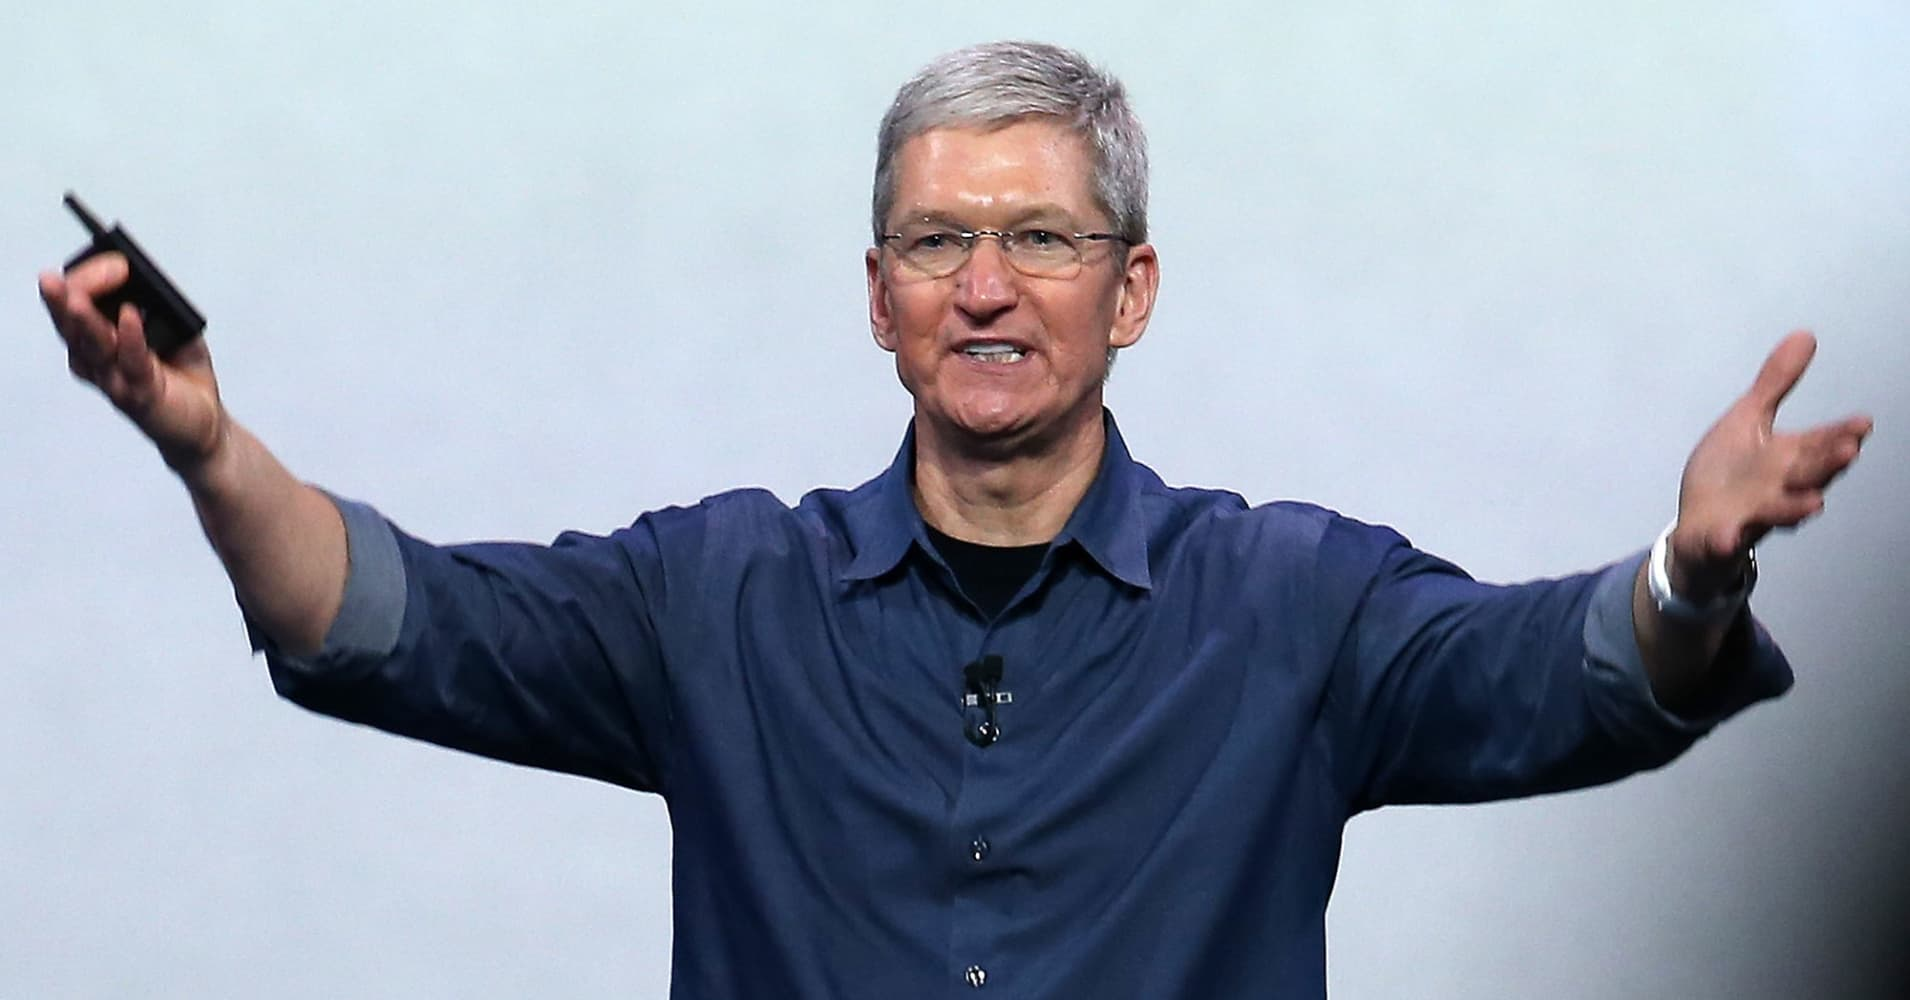 Apple also says it will create 20,000 new jobs and open a new campus.